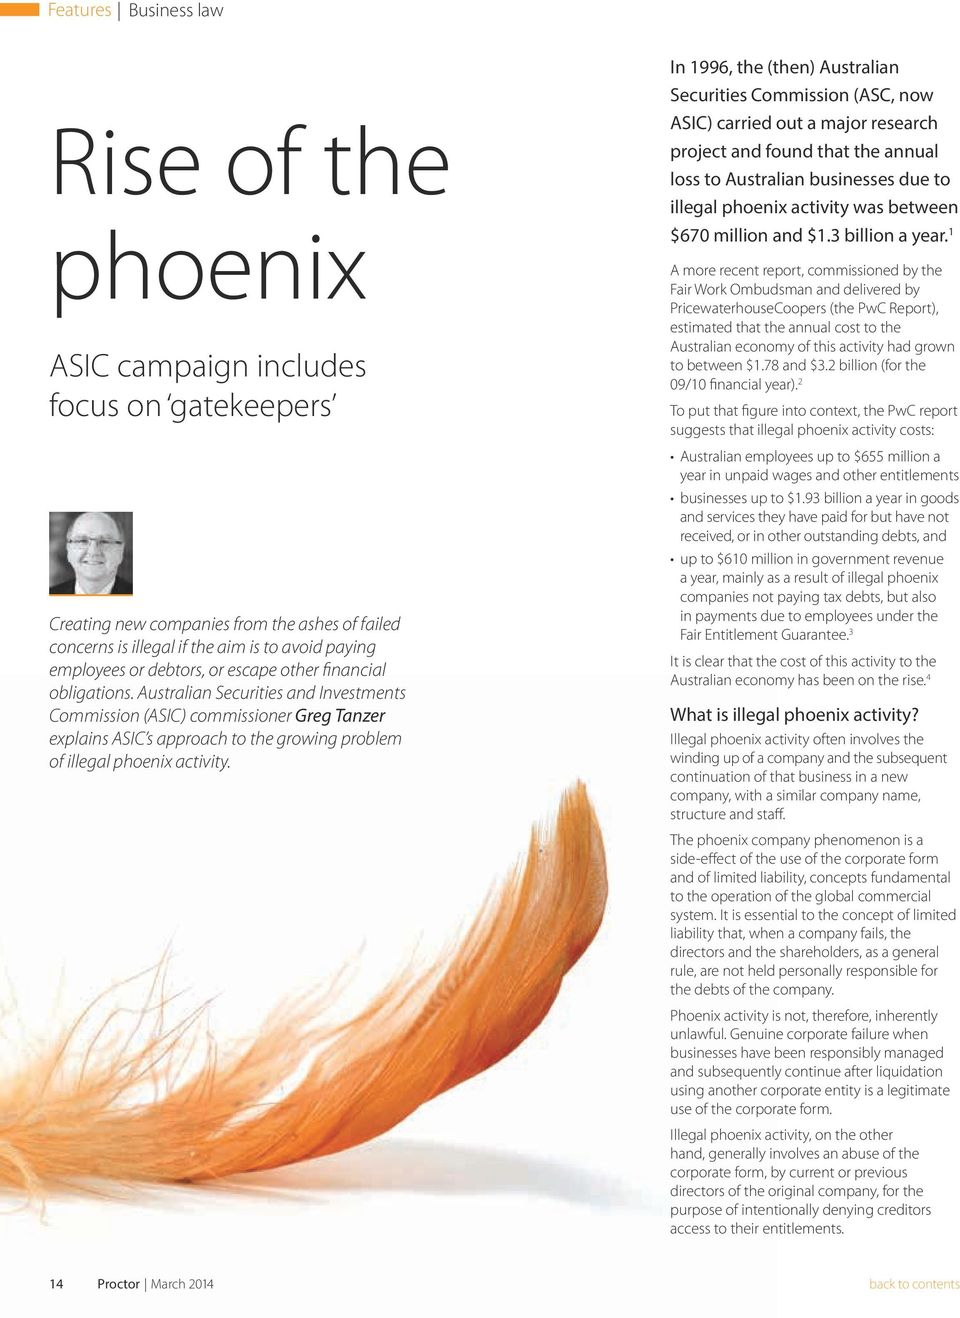 Australian Securities and Investments Commission (ASIC) commissioner Greg Tanzer explains ASIC s approach to the growing problem of illegal phoenix activity.